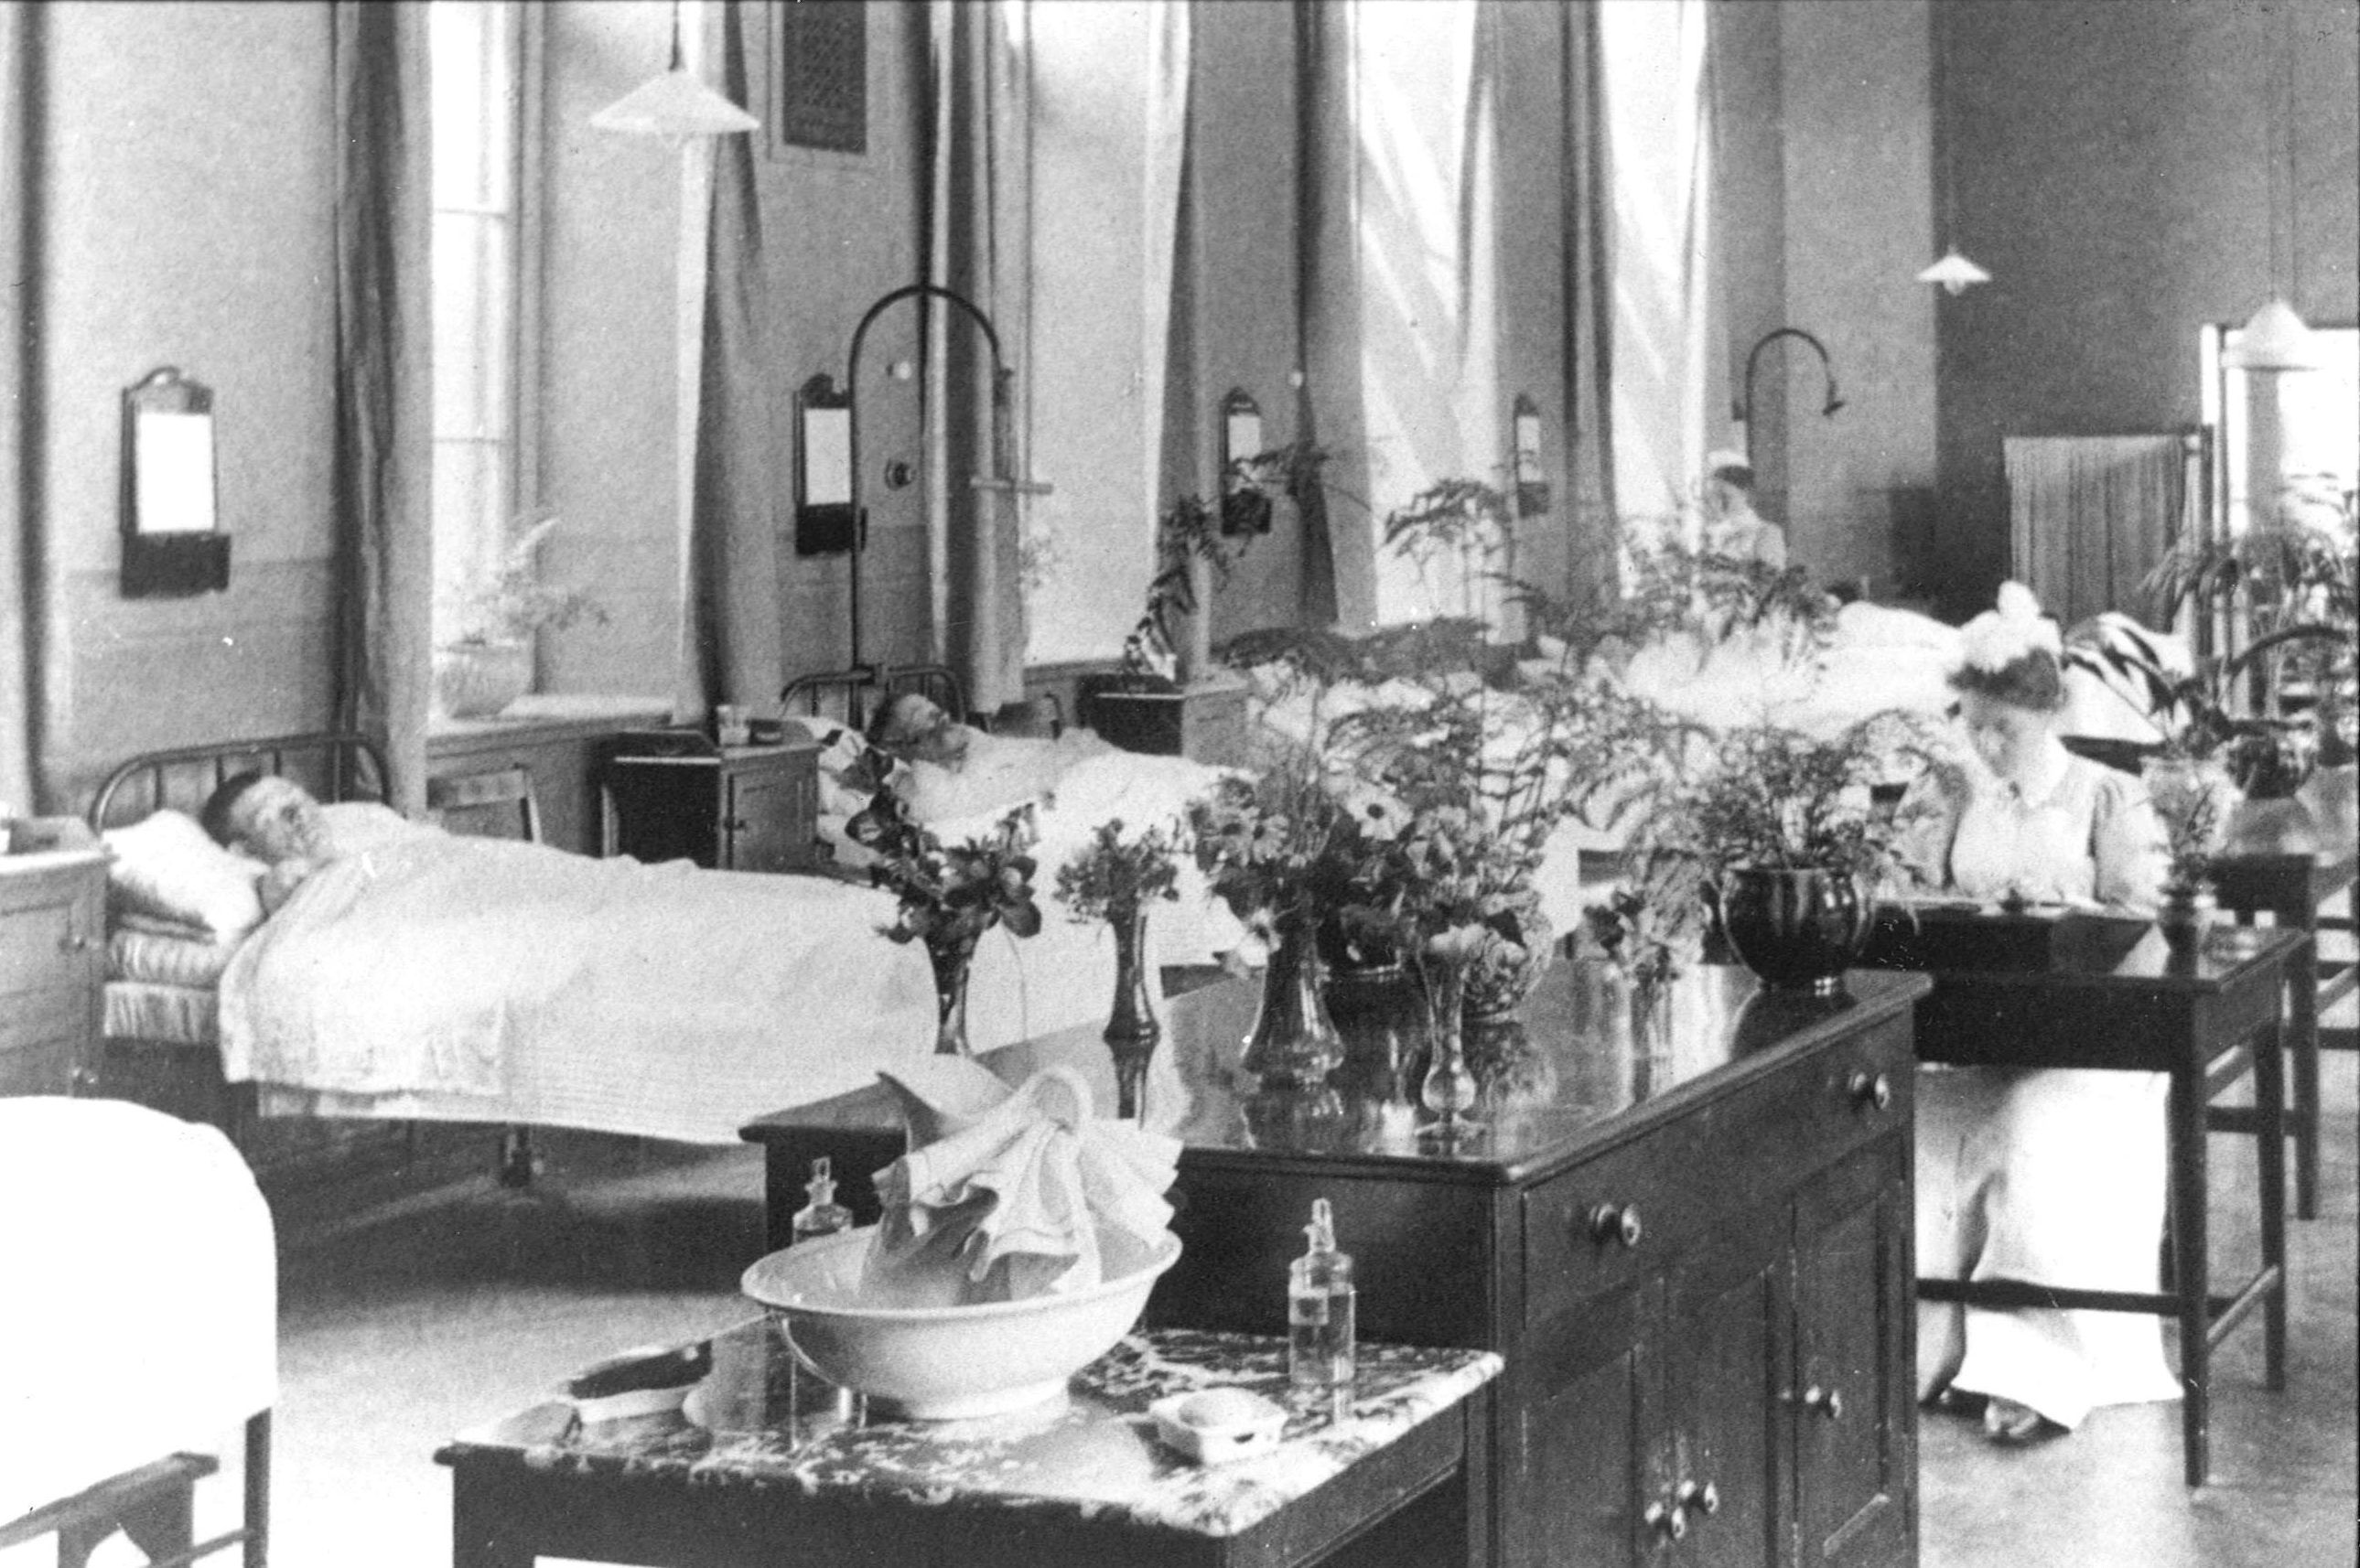 A ward at WH in the 1900s